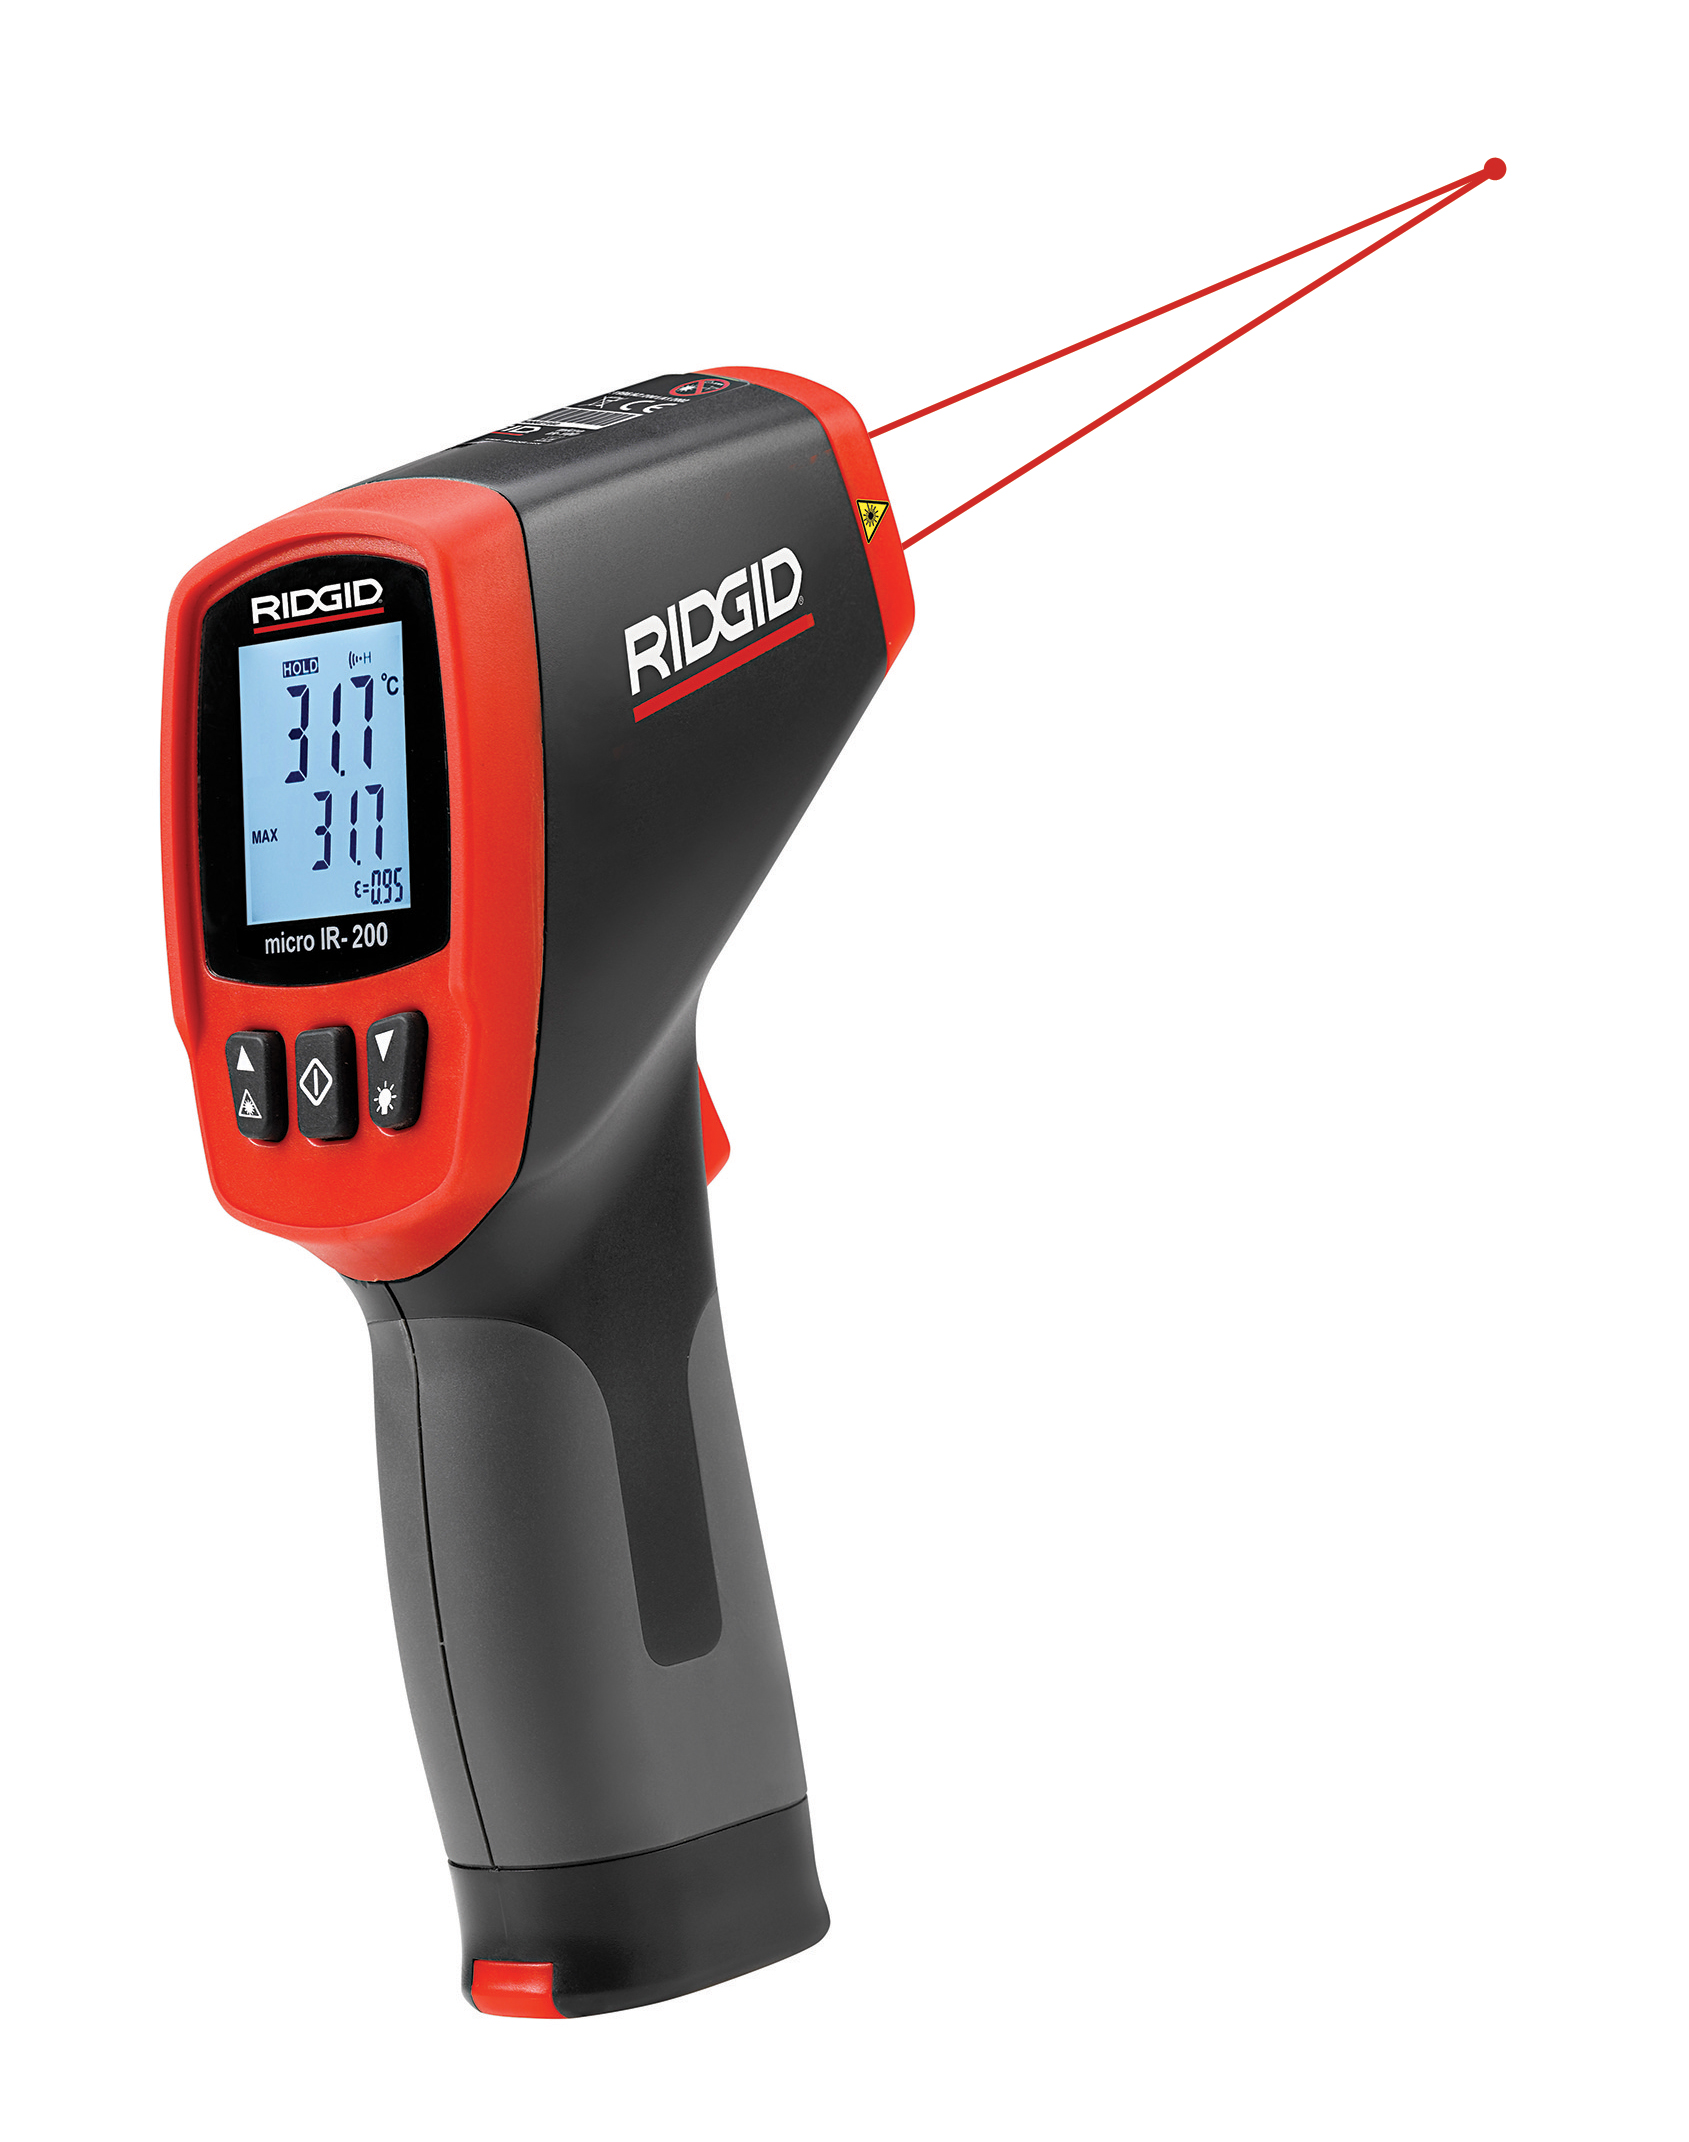 RIDGID® Upgrades Non-Contact Infrared Thermometer, Now Reads Higher Temperatures